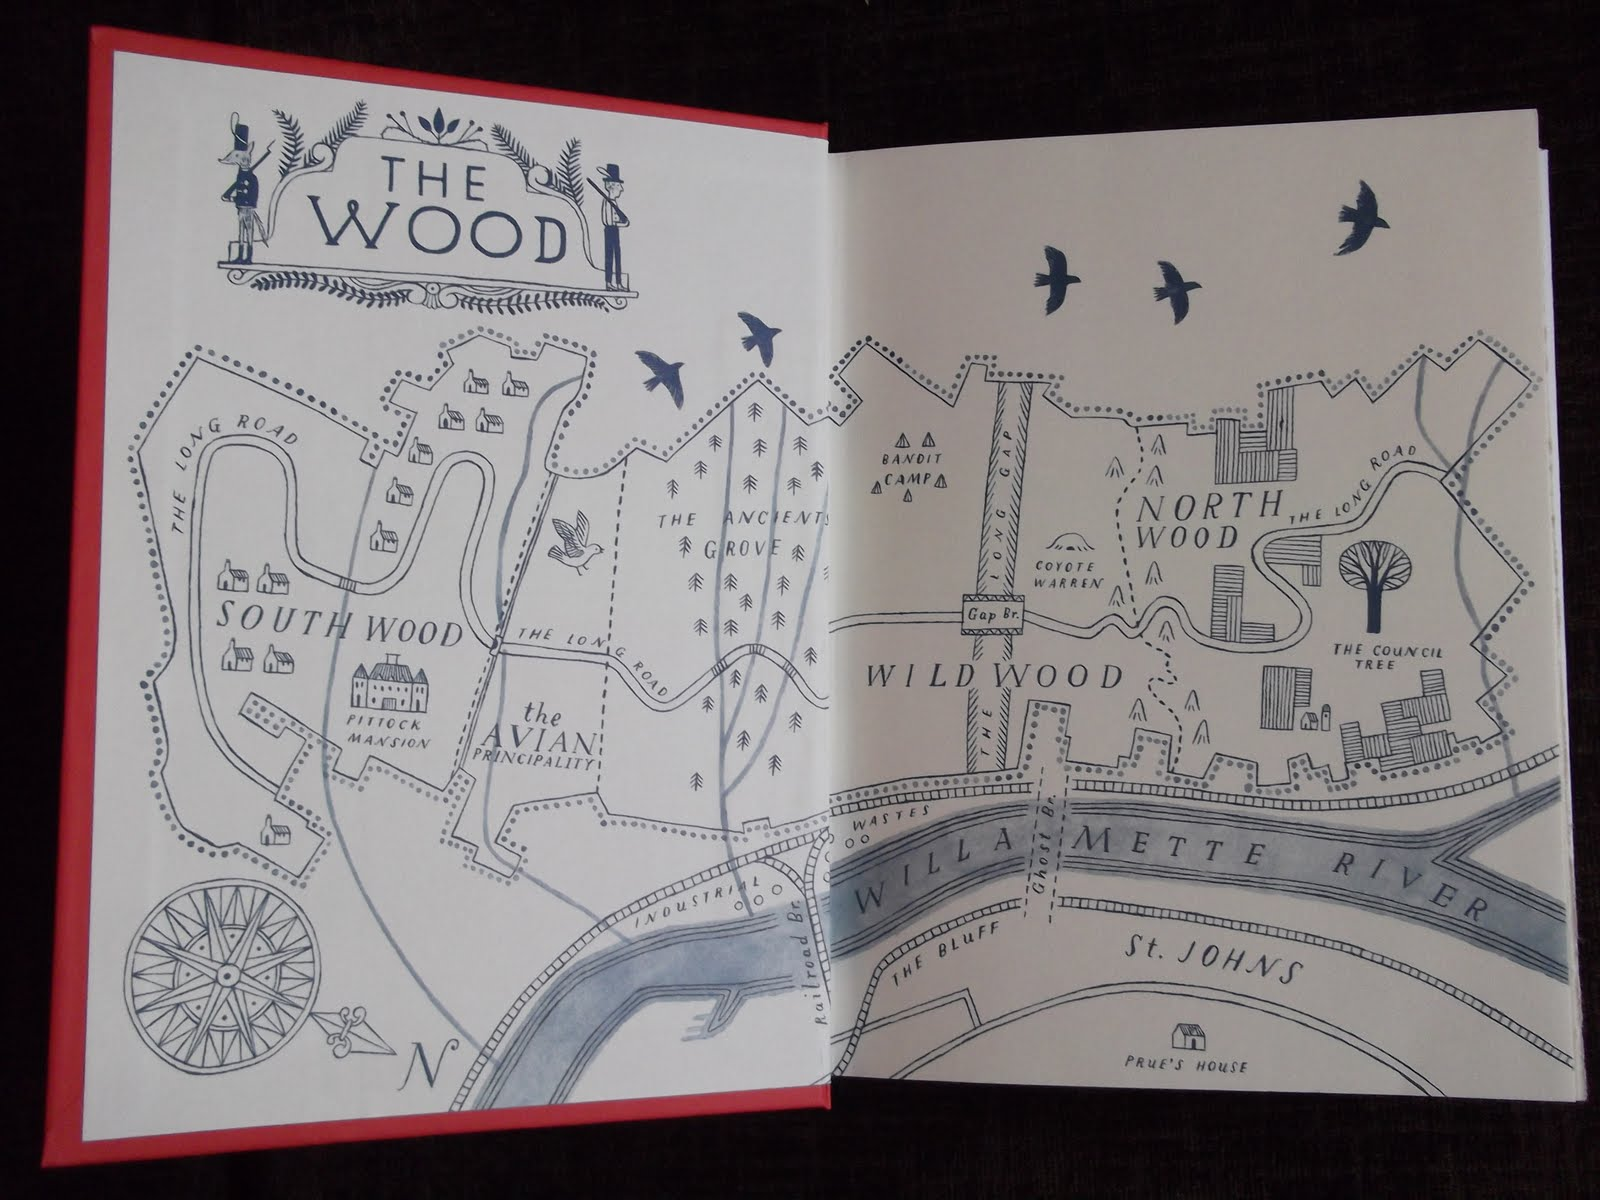 a review of wildwood a book by colin meloy The illustrator of the wildwood chronicles revisits forest park on the eve of the   groceries & markets food news & events recipes restaurant reviews  wine  when illustrator carson ellis and musician-writer colin meloy began  work on  born last march), illustrating three children's books (including the first  two that.